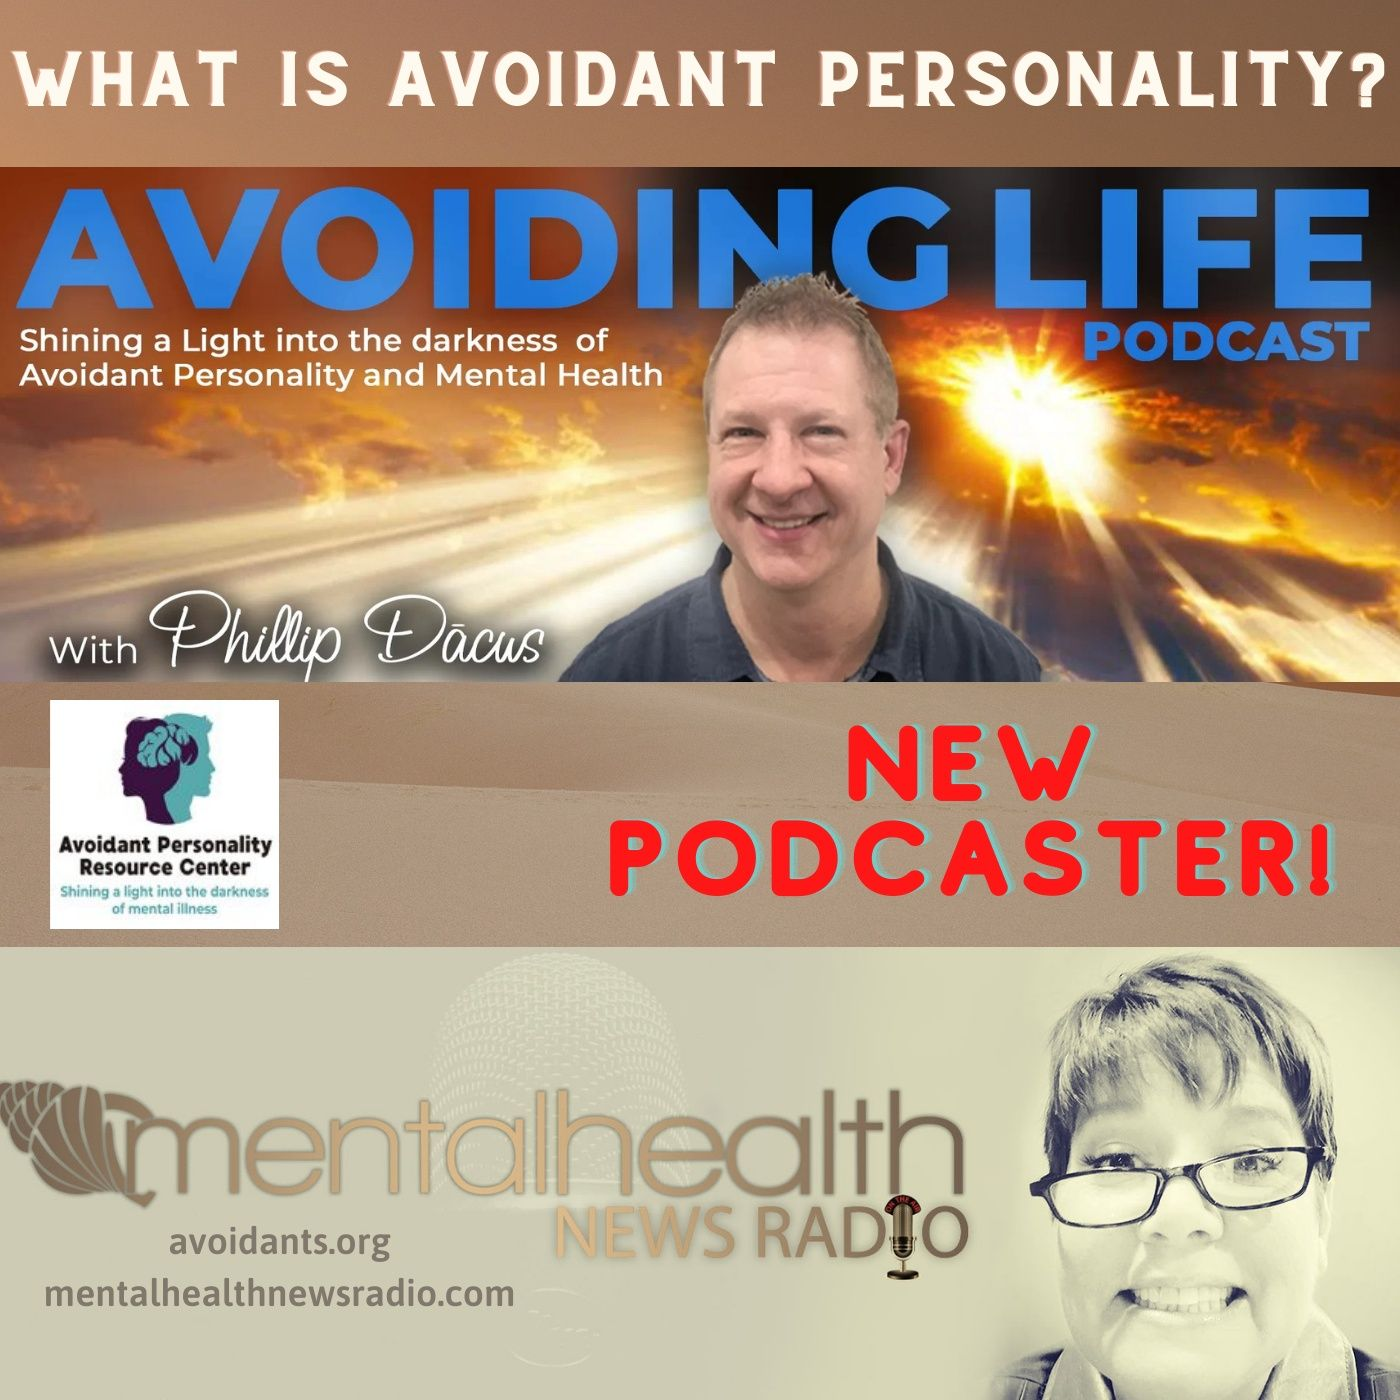 Mental Health News Radio - Avoiding Life: What is Avoidant Personality with Phillip Dacus